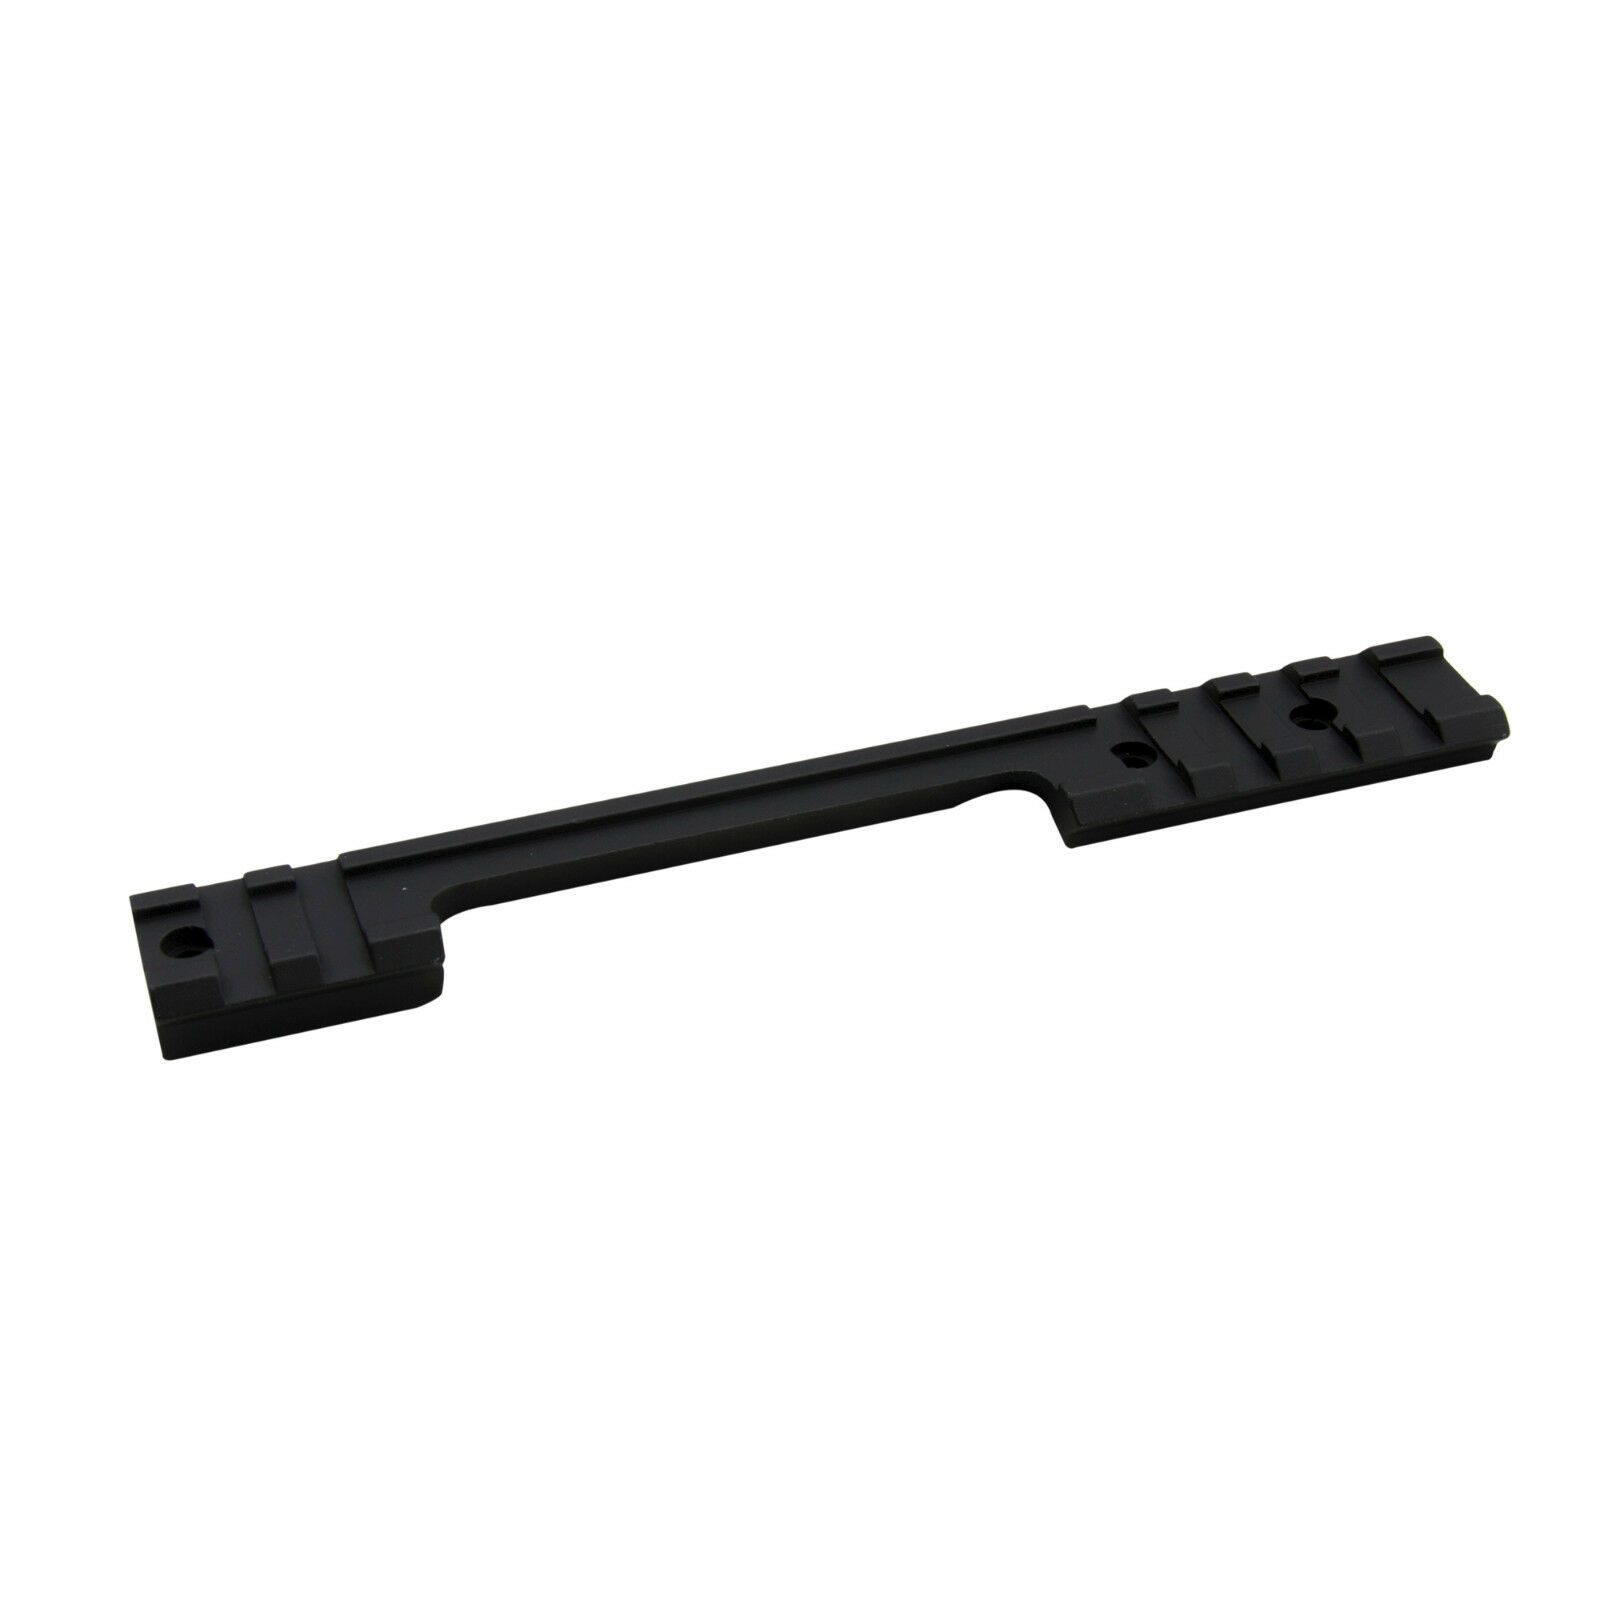 CCOP USA Picatinny Steel Scope Mount for 70 Winchester 70 for Short Action PB-WIN002 122673